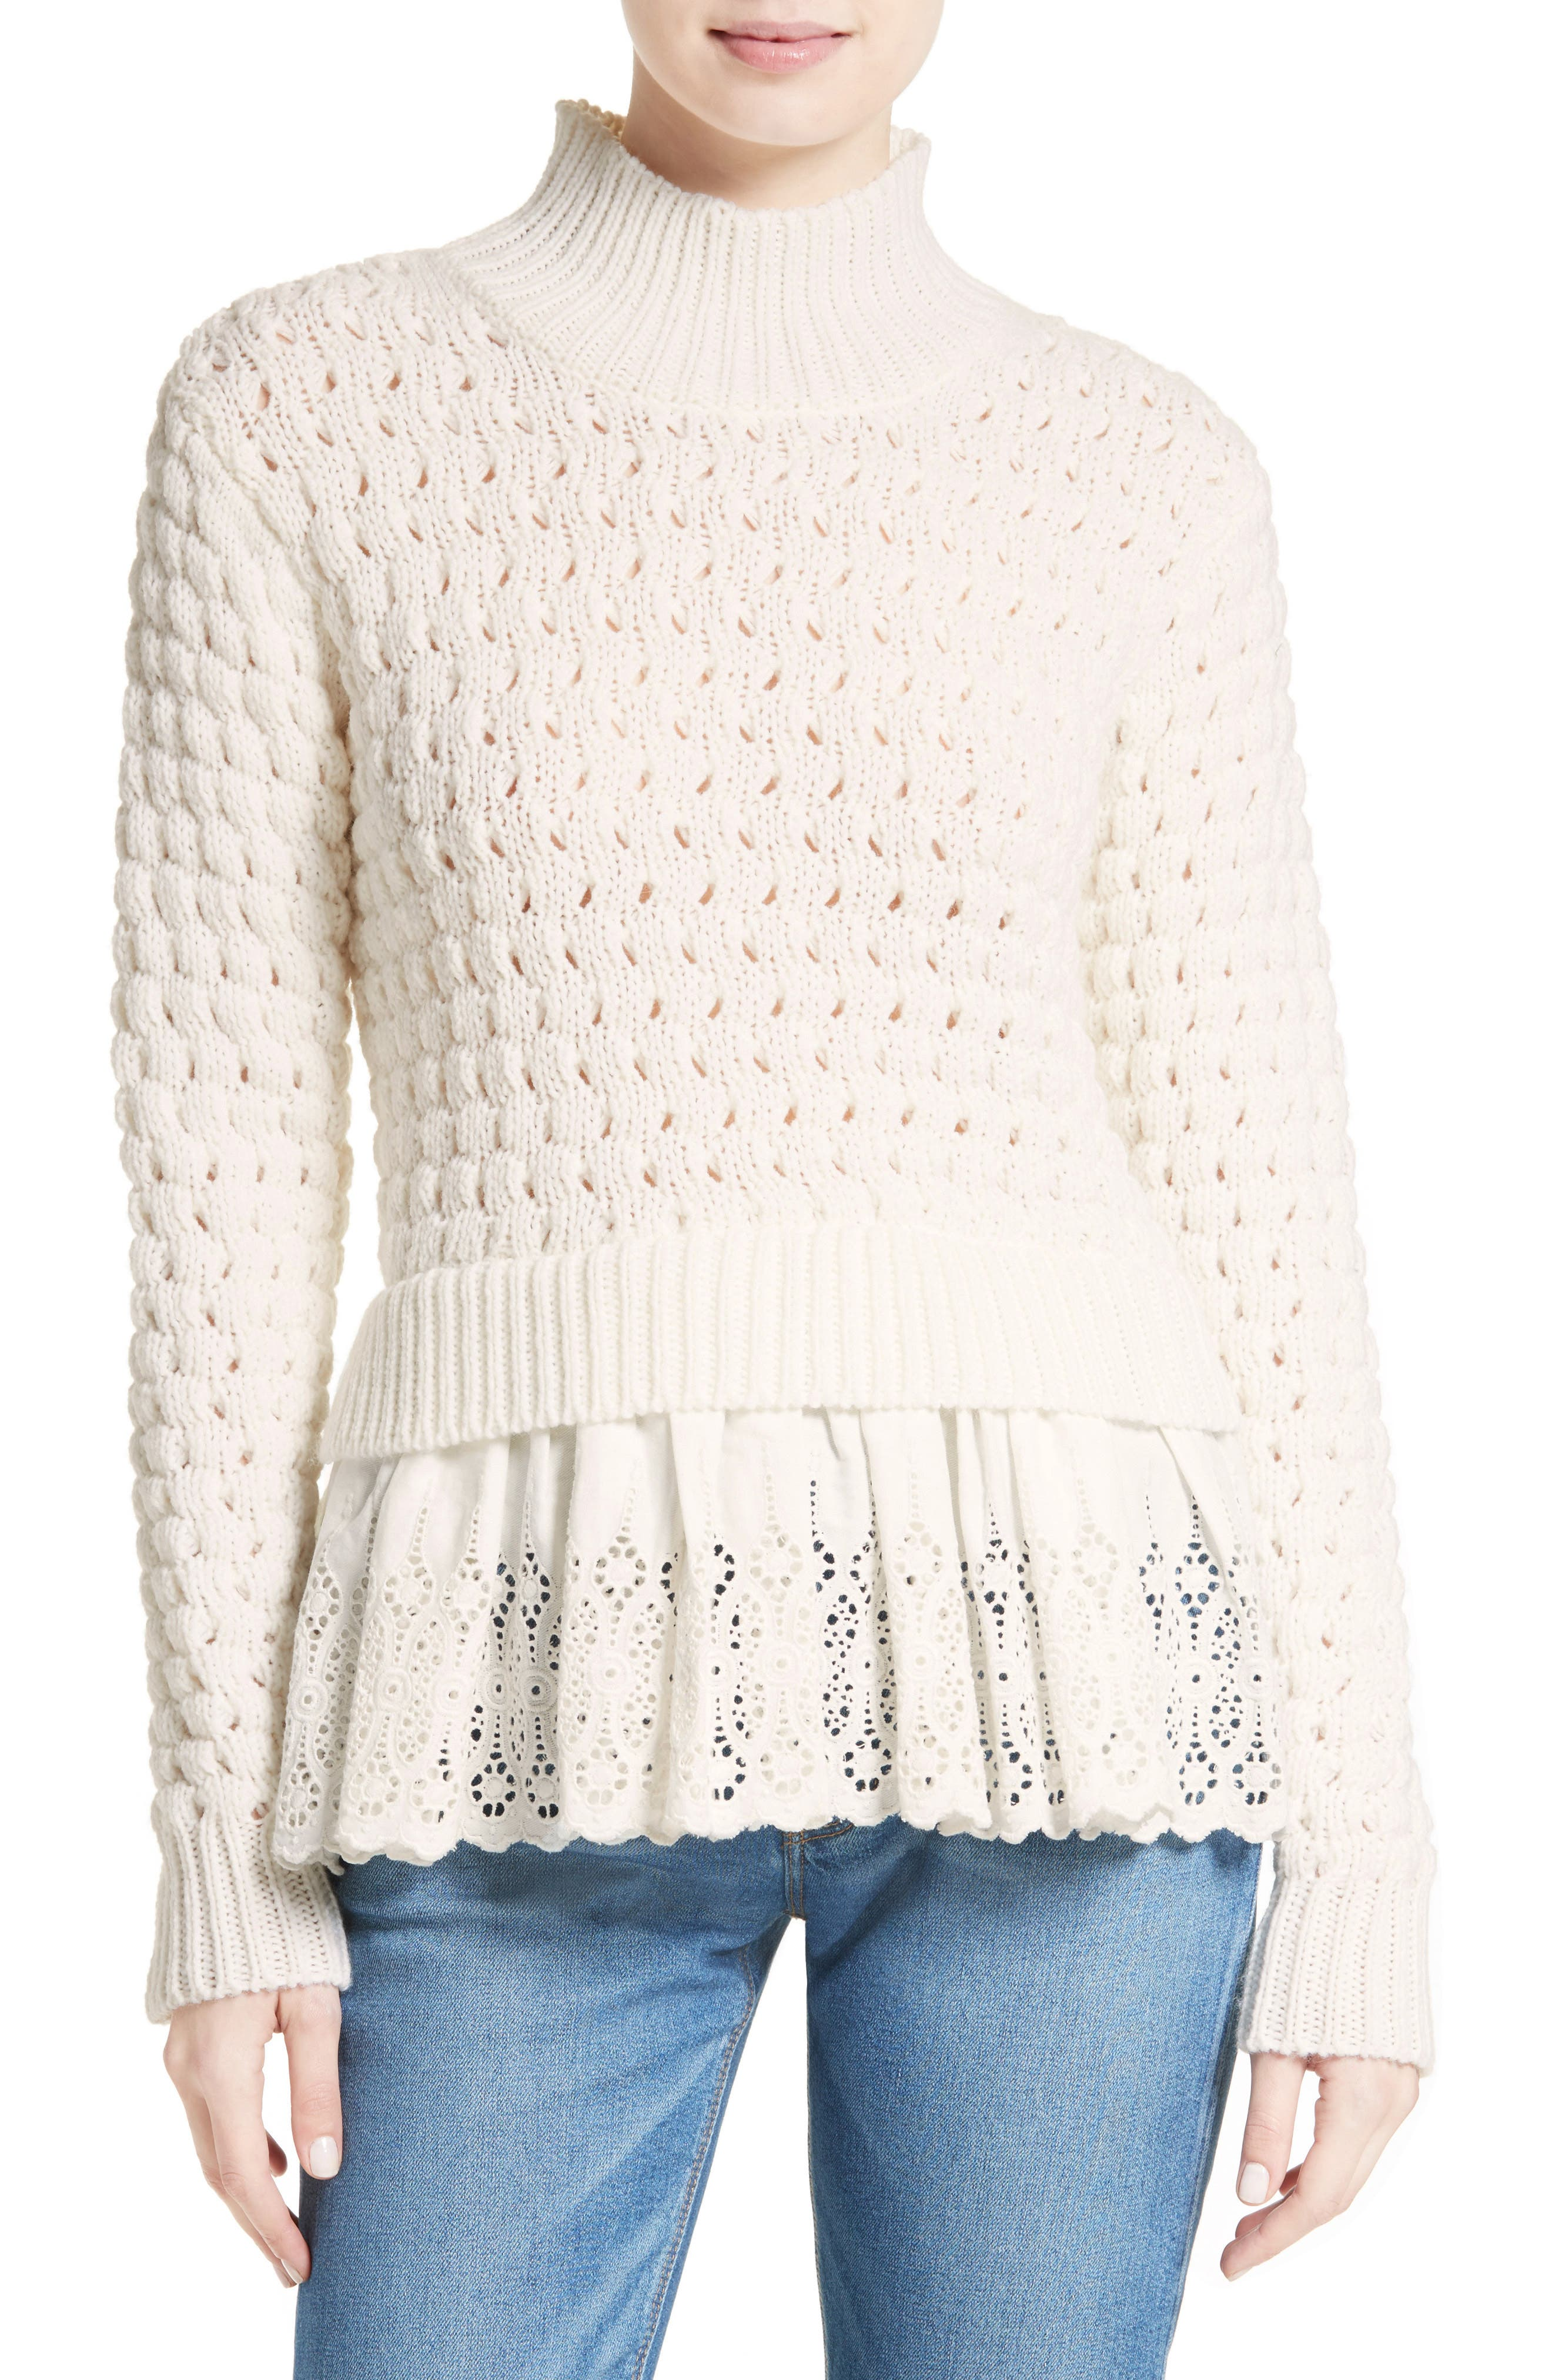 Alternate Image 1 Selected - Rebecca Taylor Eyelet Mock Neck Sweater